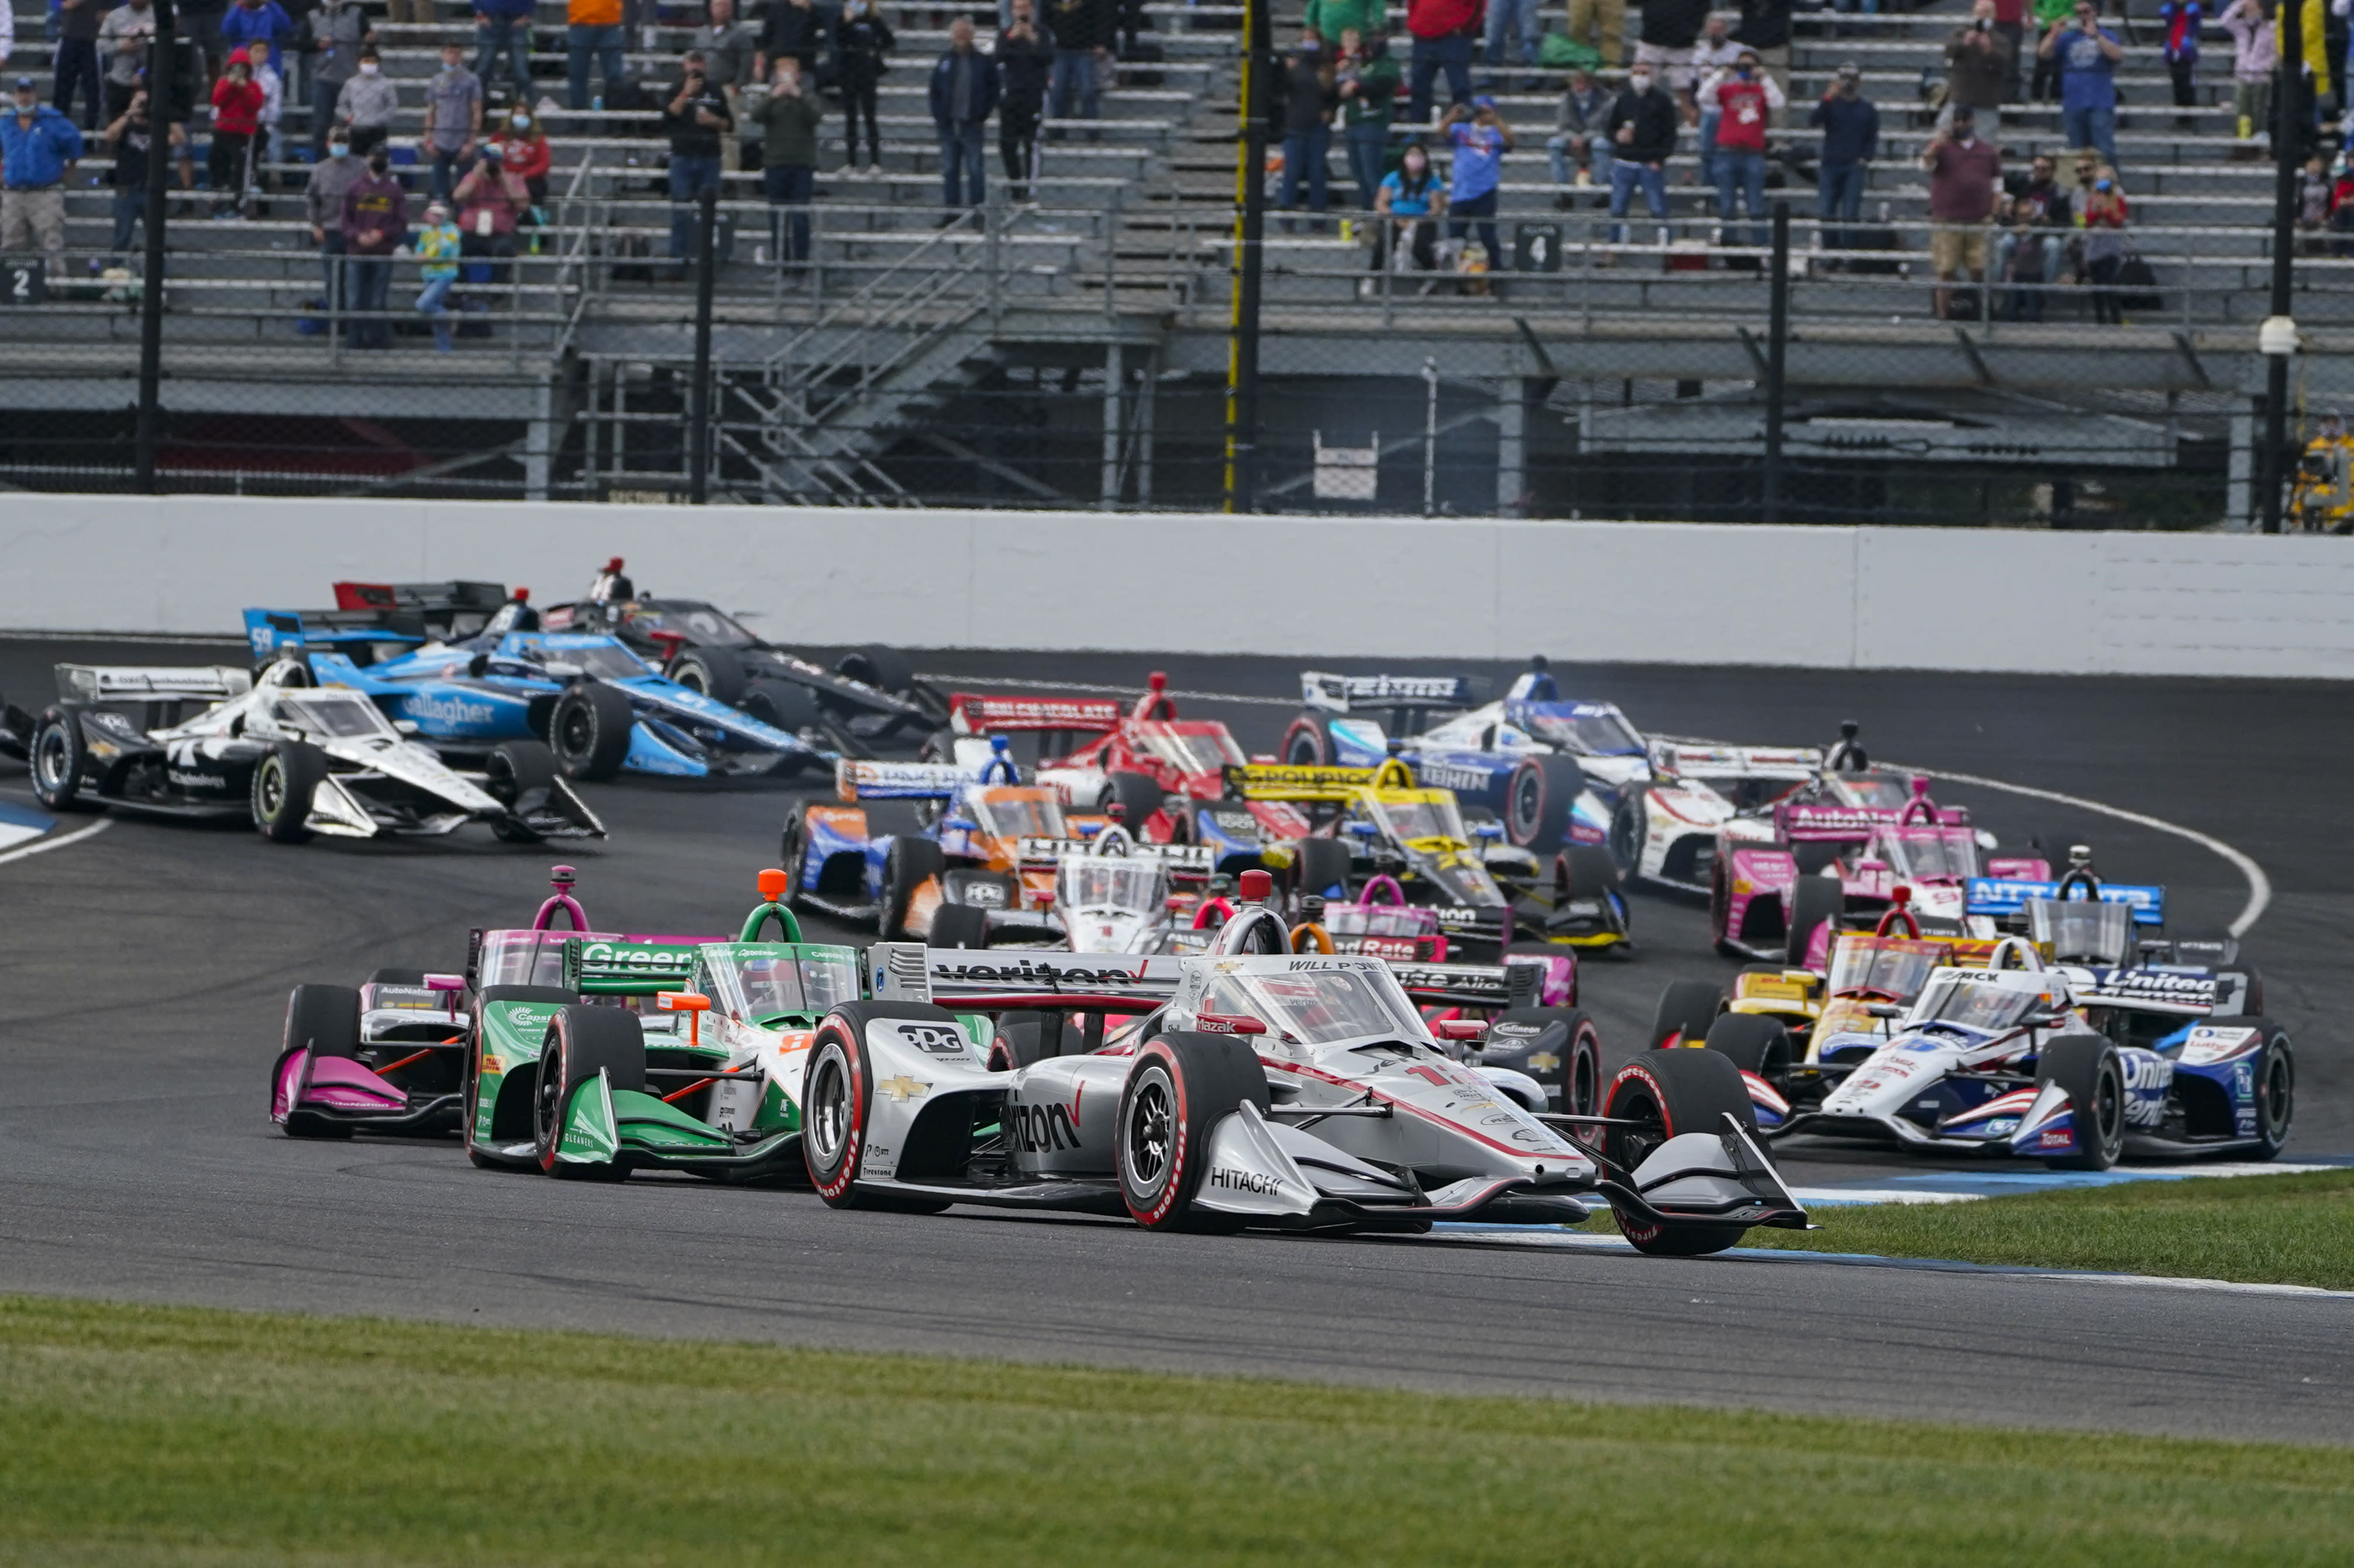 Will Power, of Australia, leads the first into the second turn on the start of an IndyCar auto race at Indianapolis Motor Speedway in Indianapolis, Saturday, Oct. 3, 2020. (AP Photo/Michael Conroy)